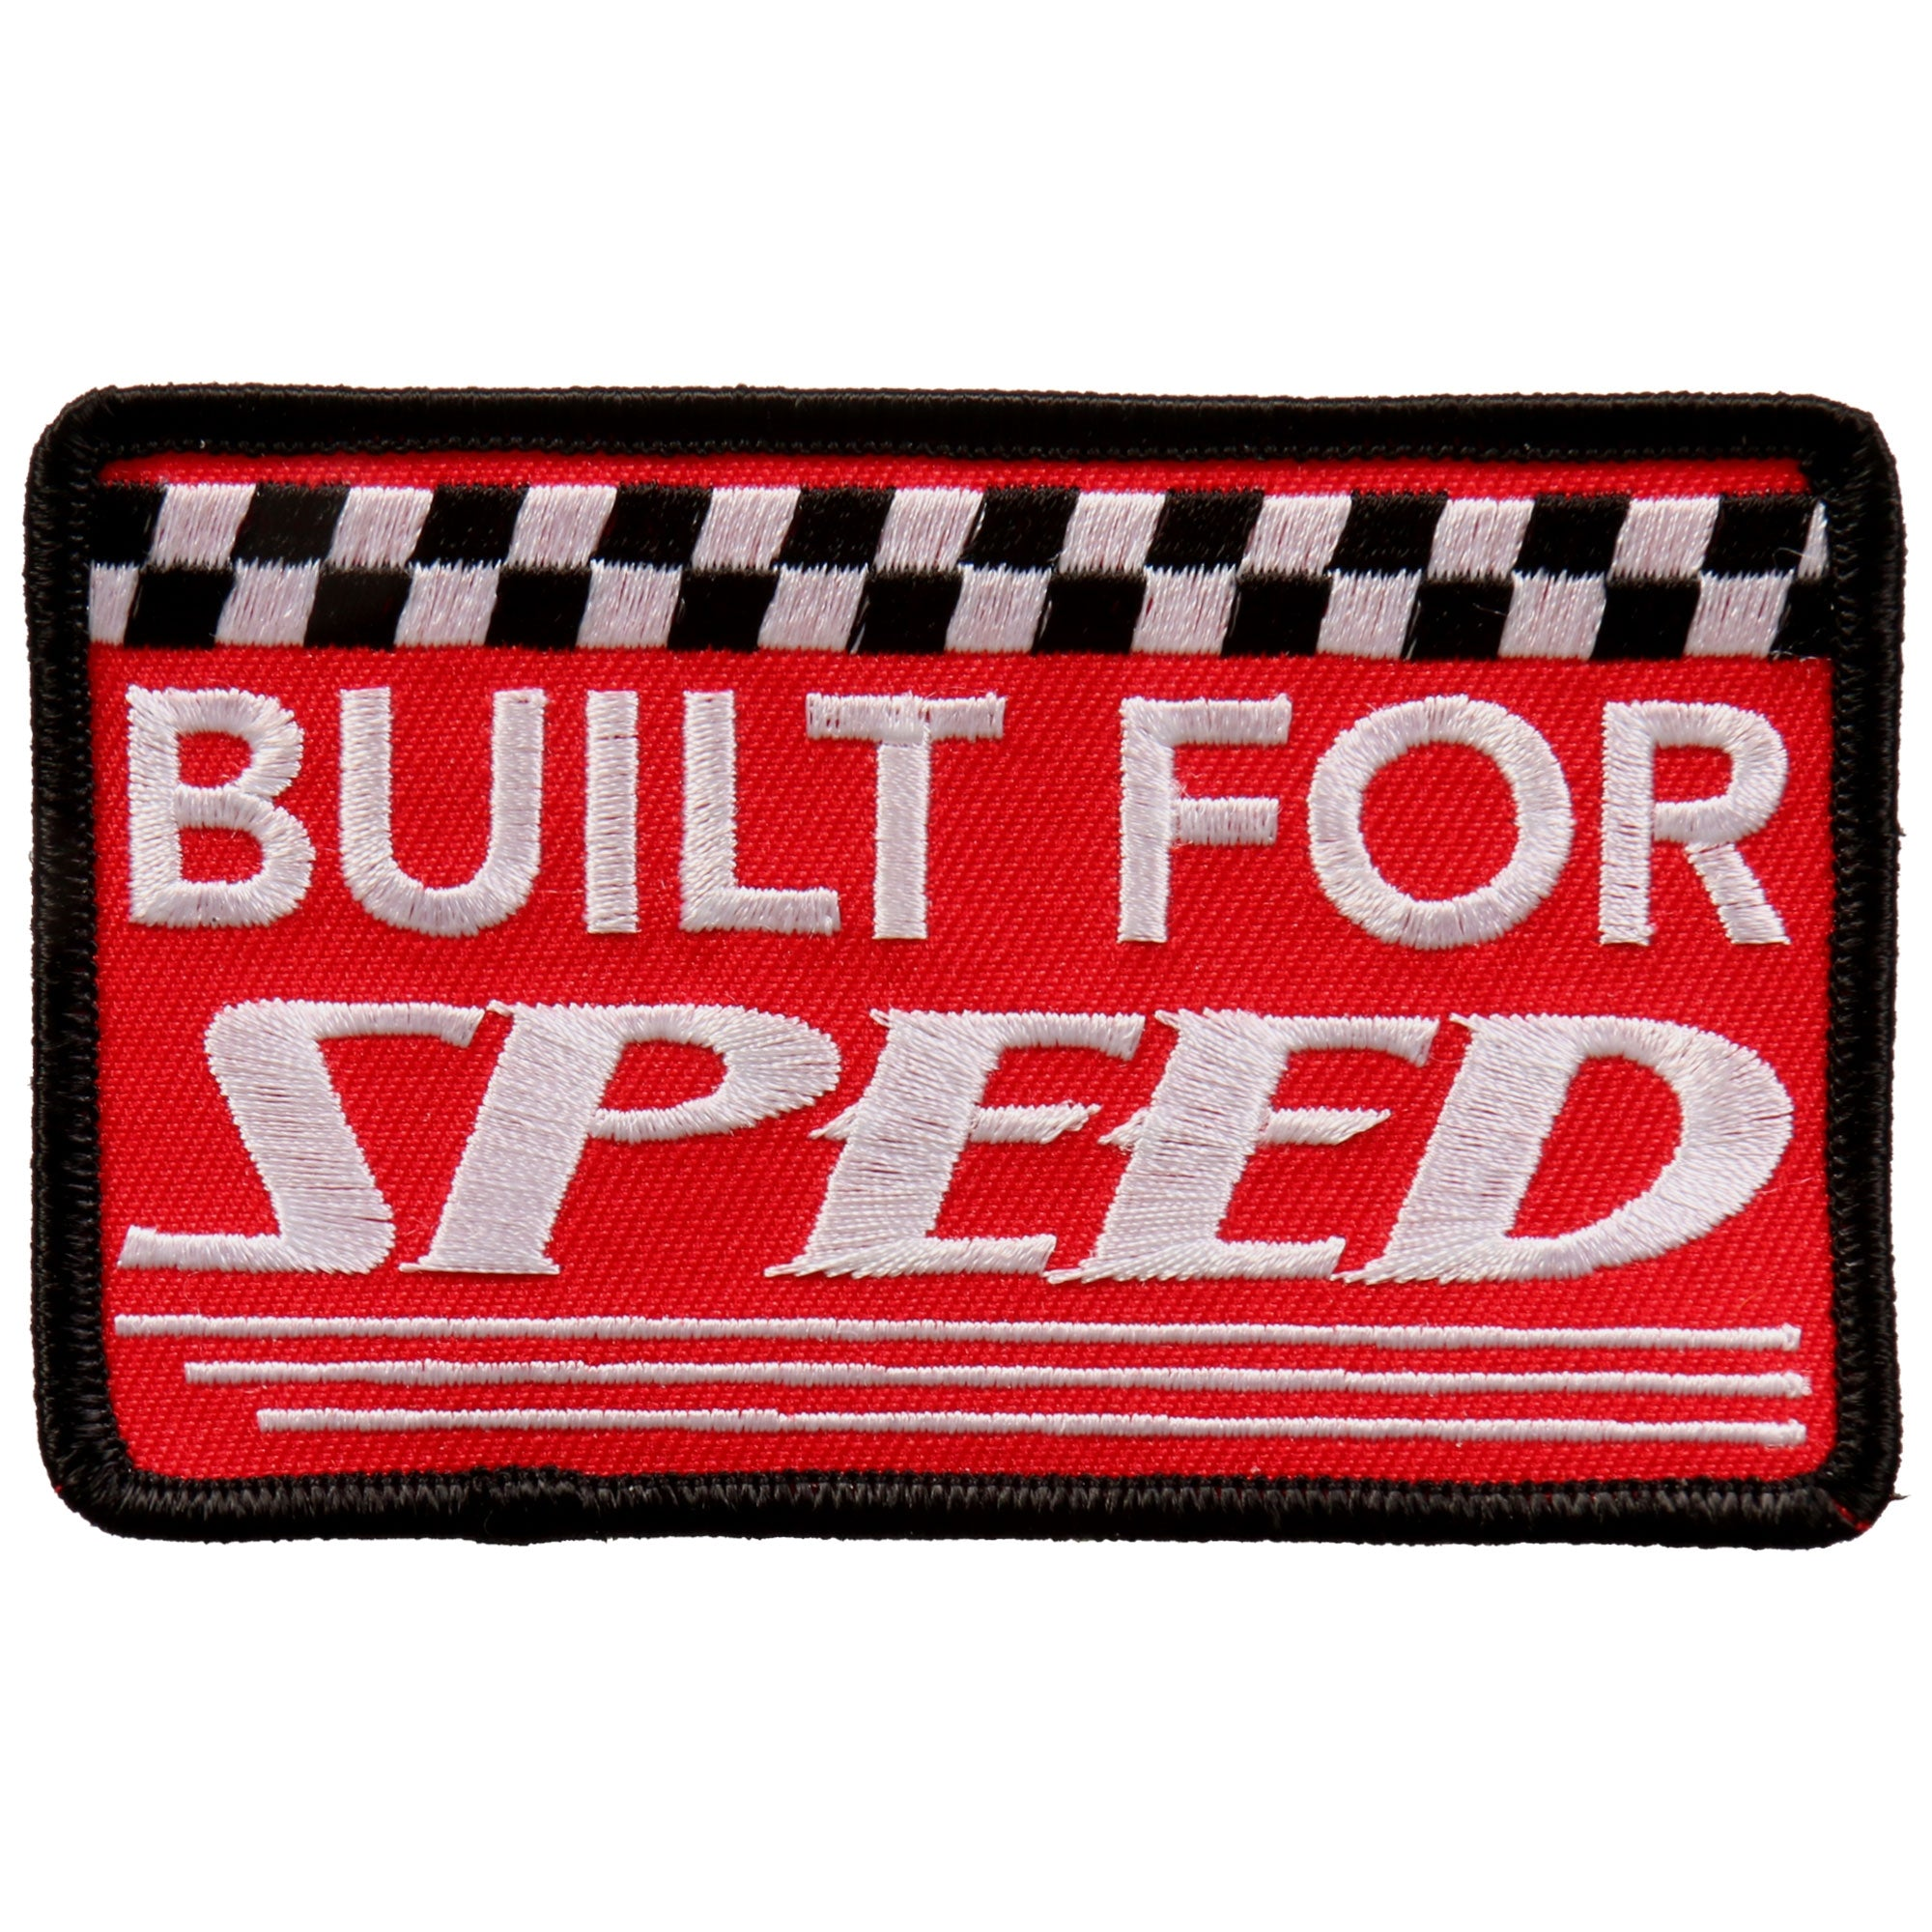 "Hot Leathers Built for Speed 4""x3"" Patch"